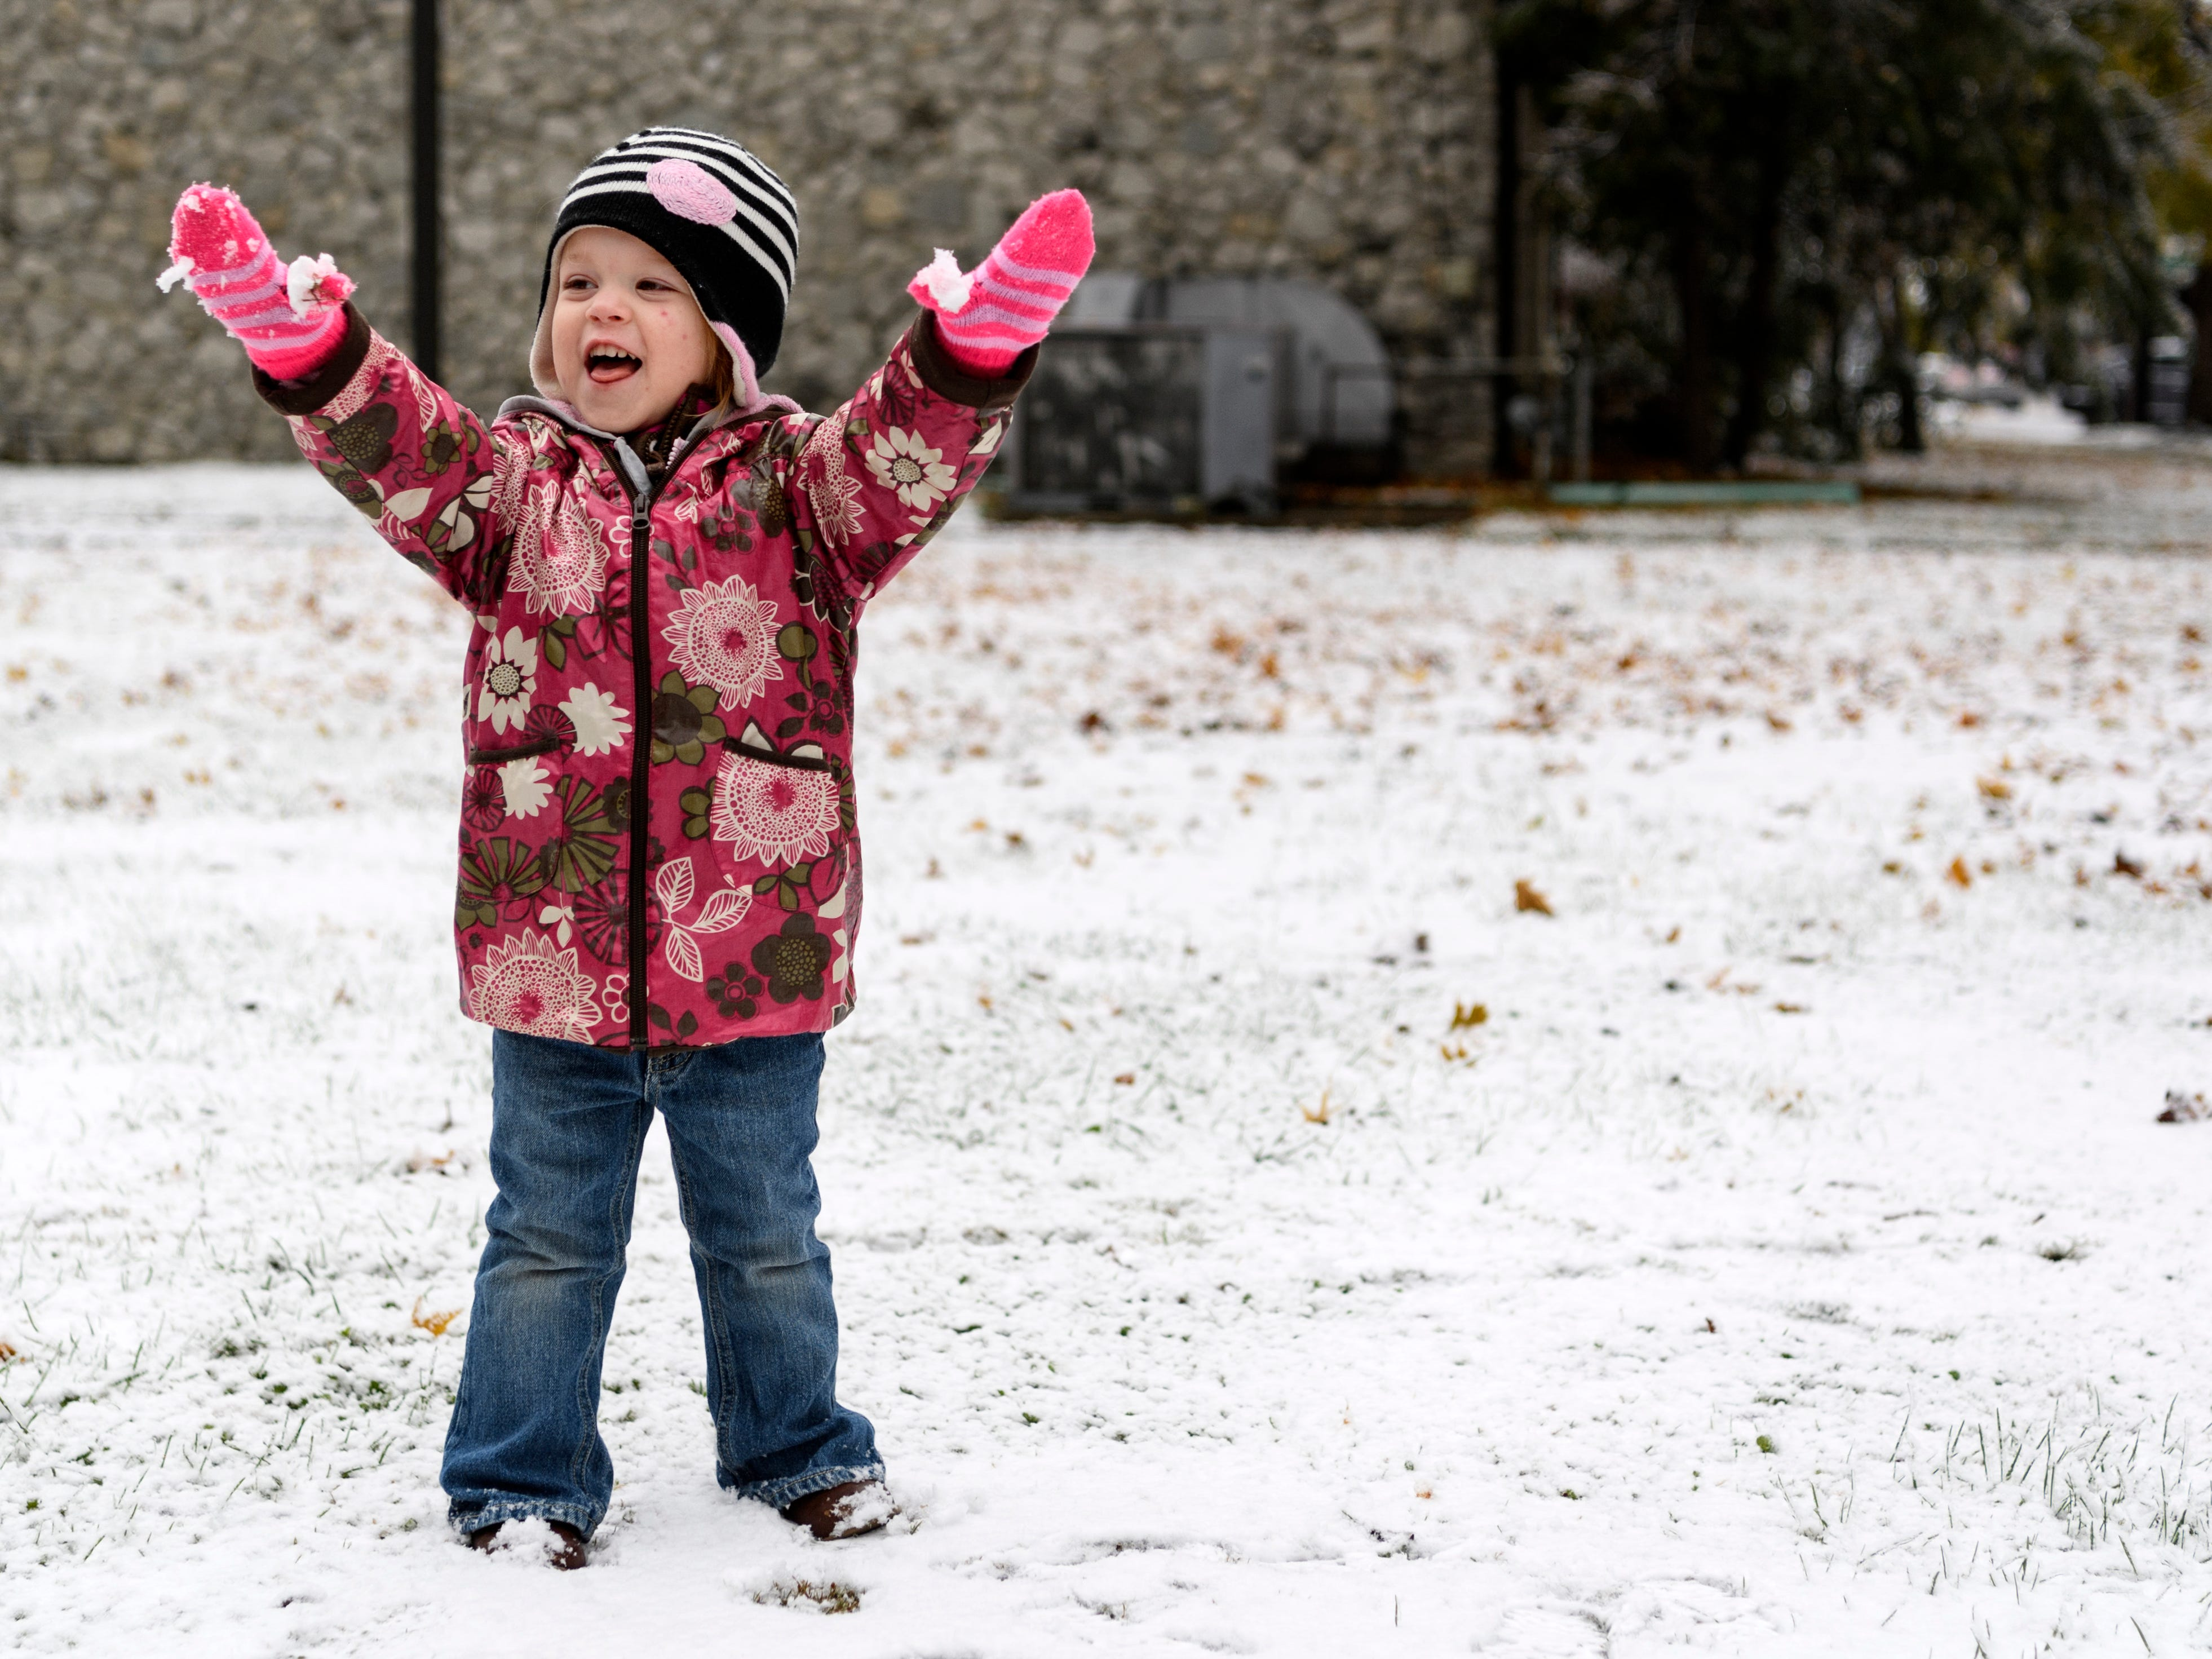 """London Phelps, 2, shows off the icy snow ball stuck to her gloves during a walk to the Henderson County Public Library with her sisters, Emmy, 4, and Harper, 2-months-old, and mother, Whitney Phelps, in downtown Henderson, Ky., Thursday, Nov. 15, 2018. """"We thought we would go to the library to see if we could check out the movie 'Frozen' and watch it at home with some popcorn during our snow day,"""" Whitney said."""